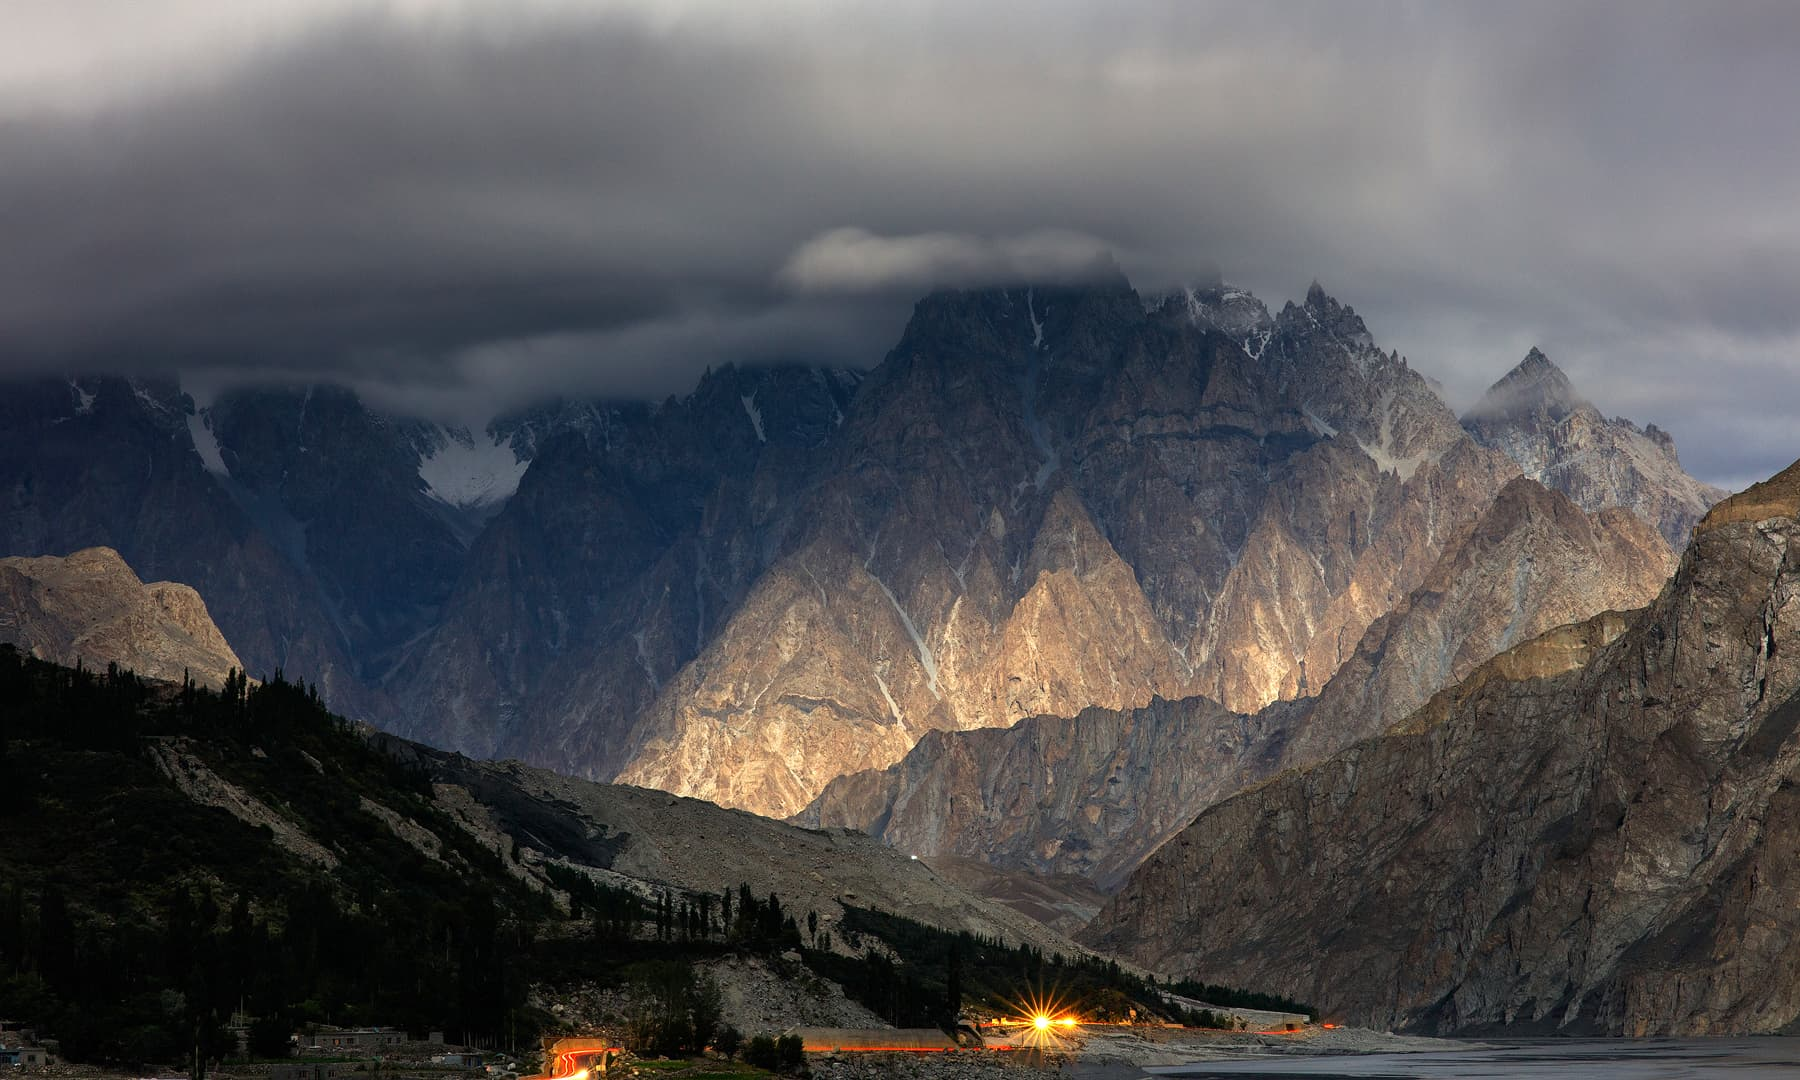 The moonlight blankets Gulmit village as seen from the Karakoram Highway.